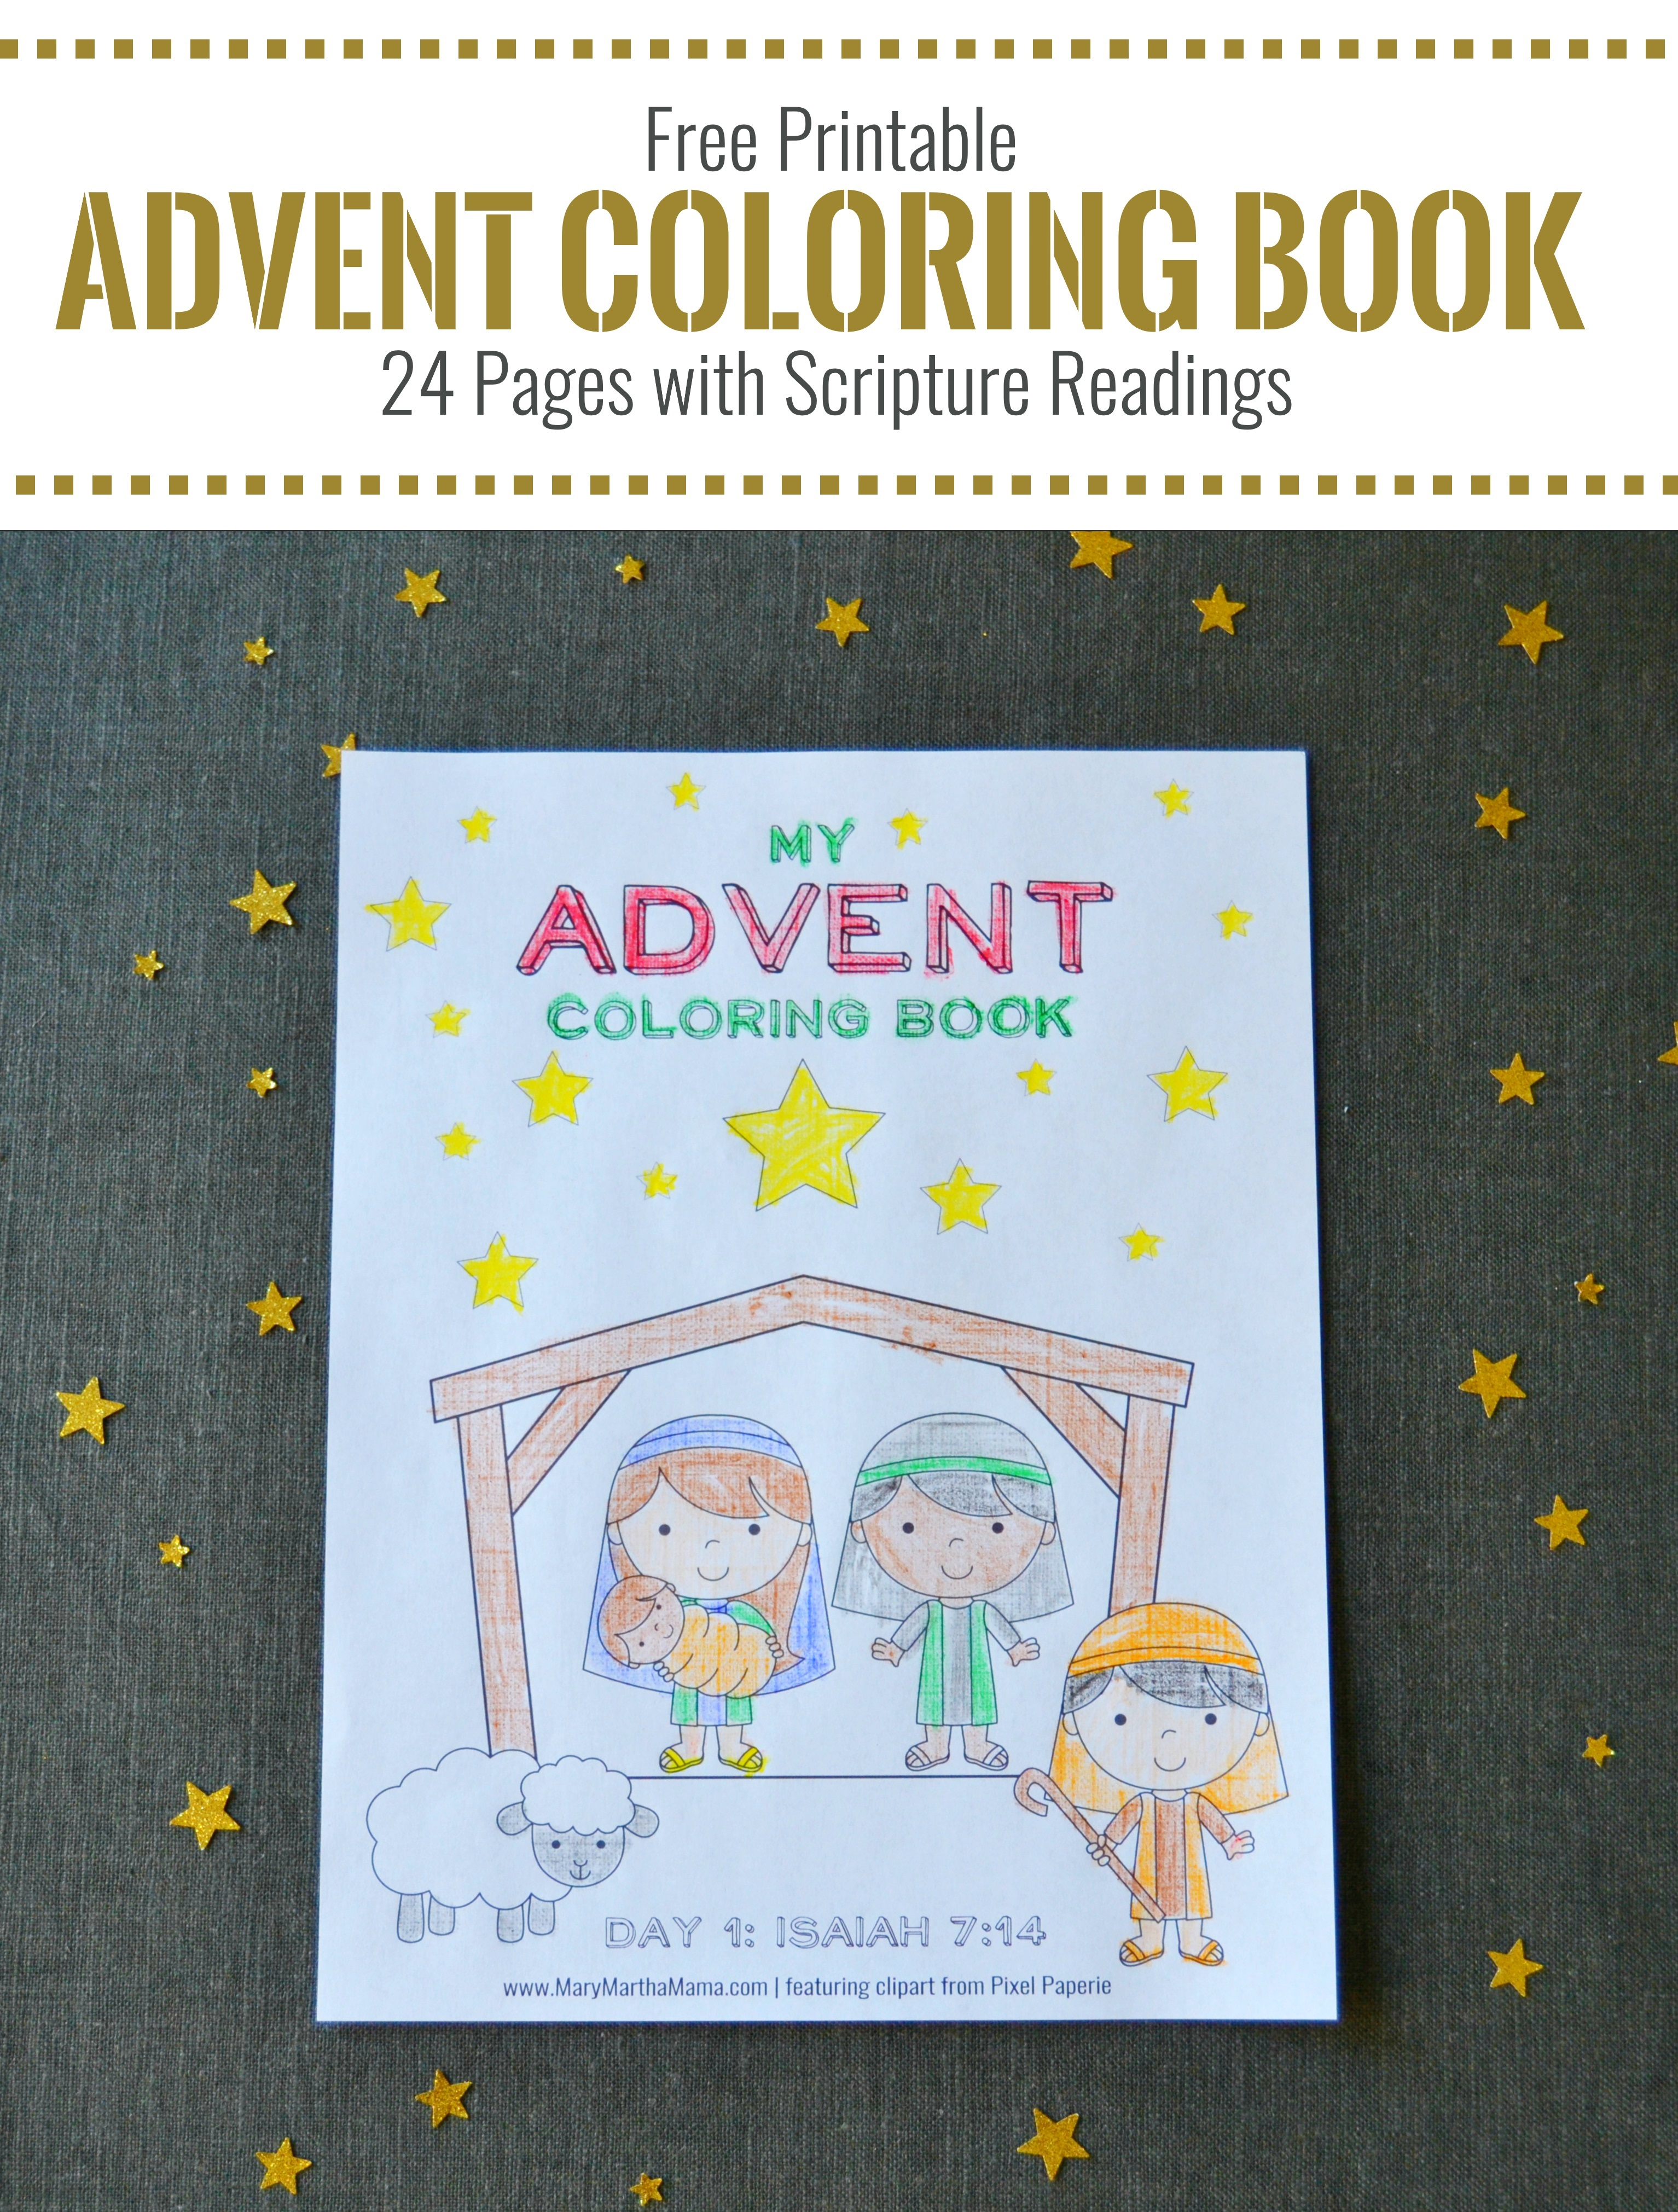 Free Printable Advent Coloring Book For Kids